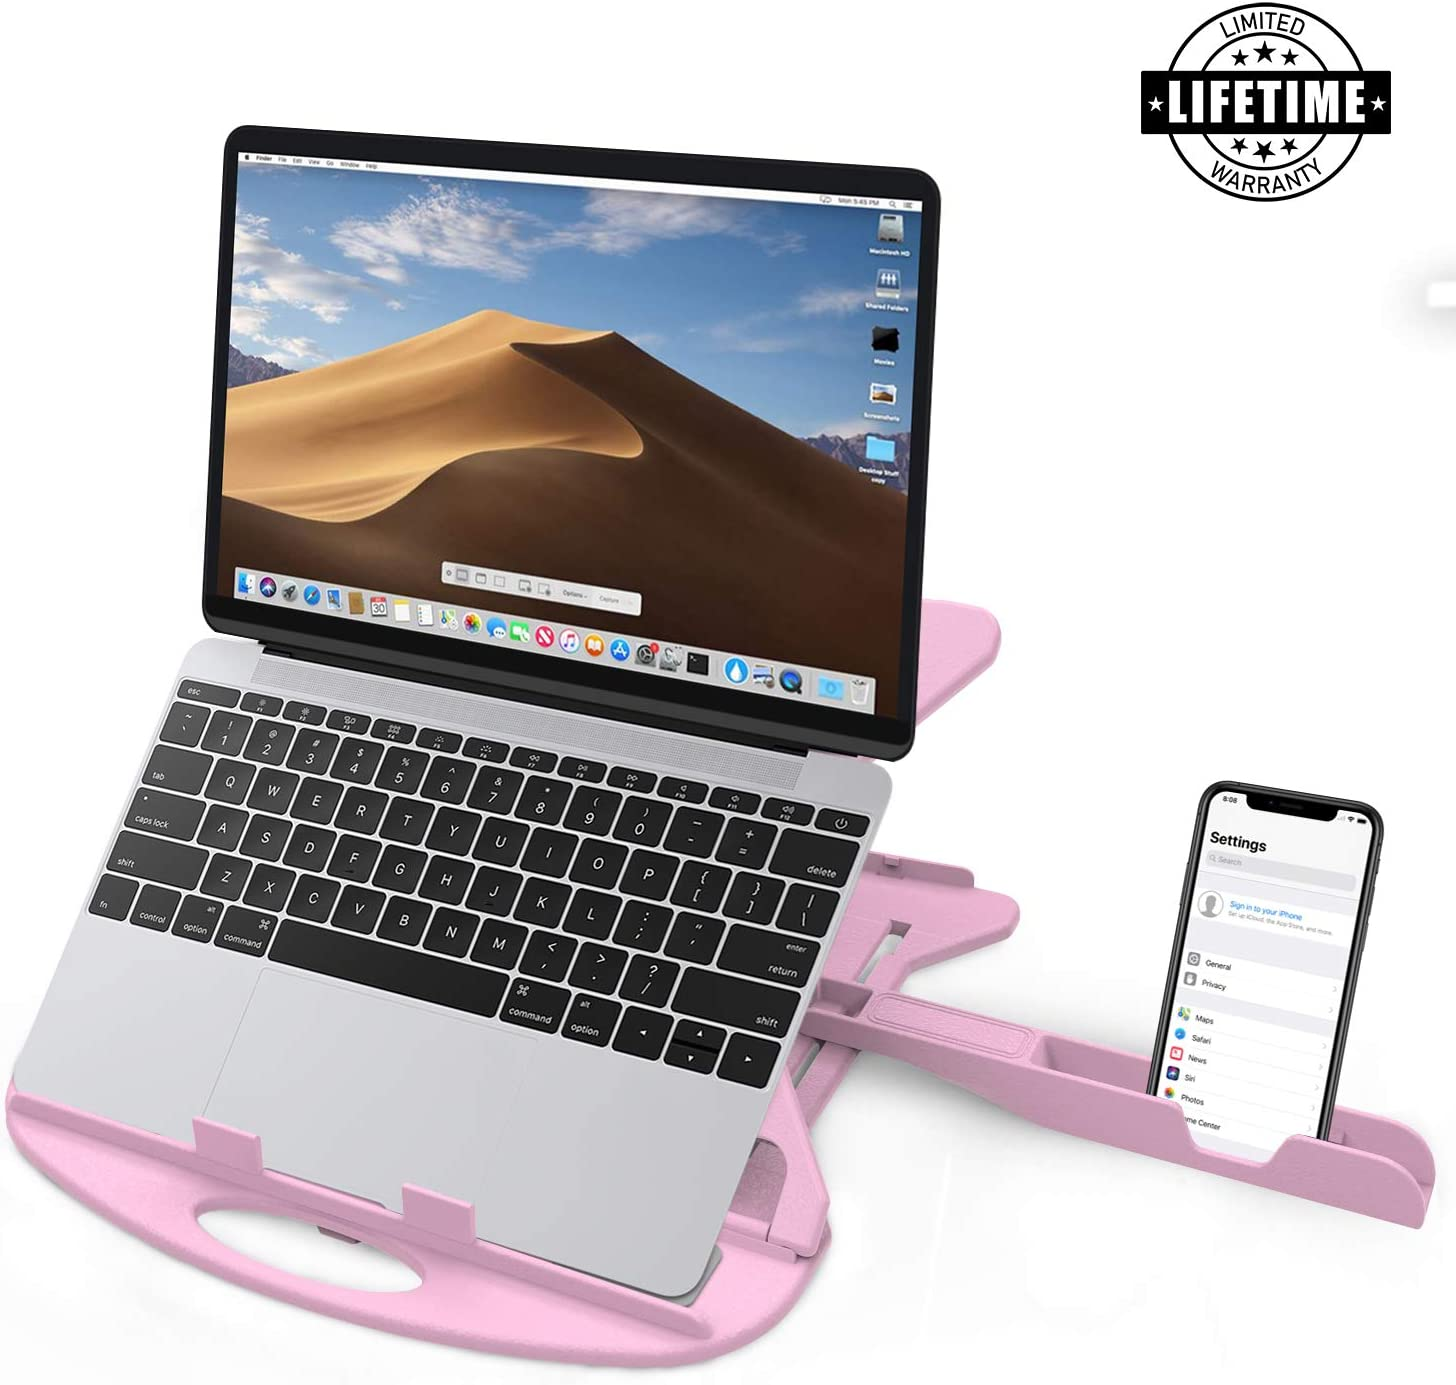 Carnation Laptop Stand Desk with Phone Stand and Cable Clip. Adjustable, Foldable & Portable Riser. Fully Compatible MacBook Base Holder. Enjoy!